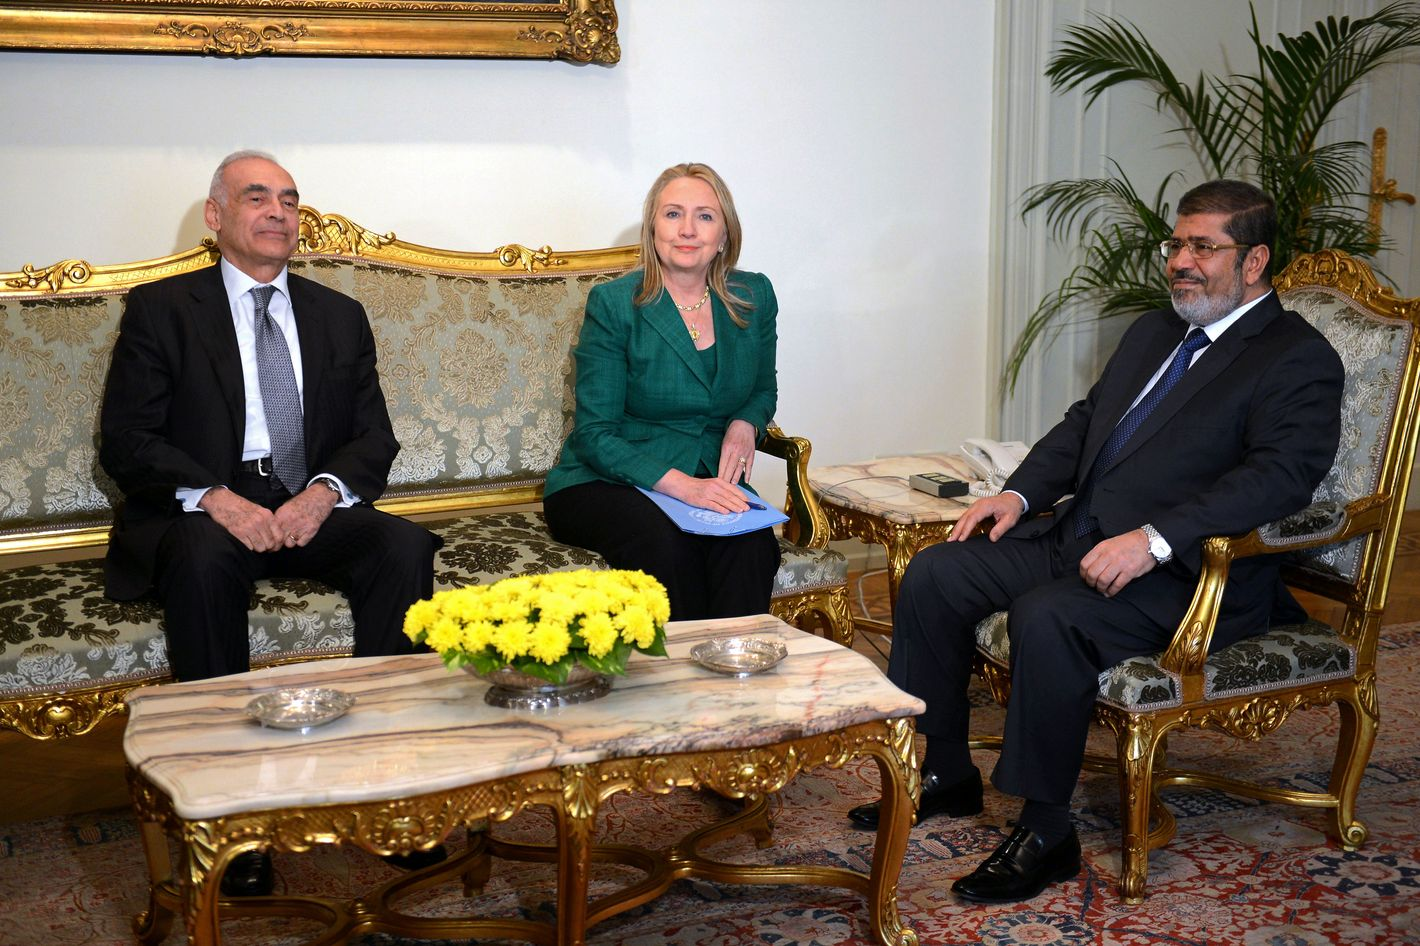 Egyptian President Mohamed Morsi (R) and his Foreign Minister Mohammed Kamel Amr (L) meet with US Secretary Hilary Clinton at the presidential palace in Cairo on November 21, 2012. Clinton's visit comes amid a flurry of diplomatic activity aimed an bringing an end to the conflict which has killed over 130 people in a week.